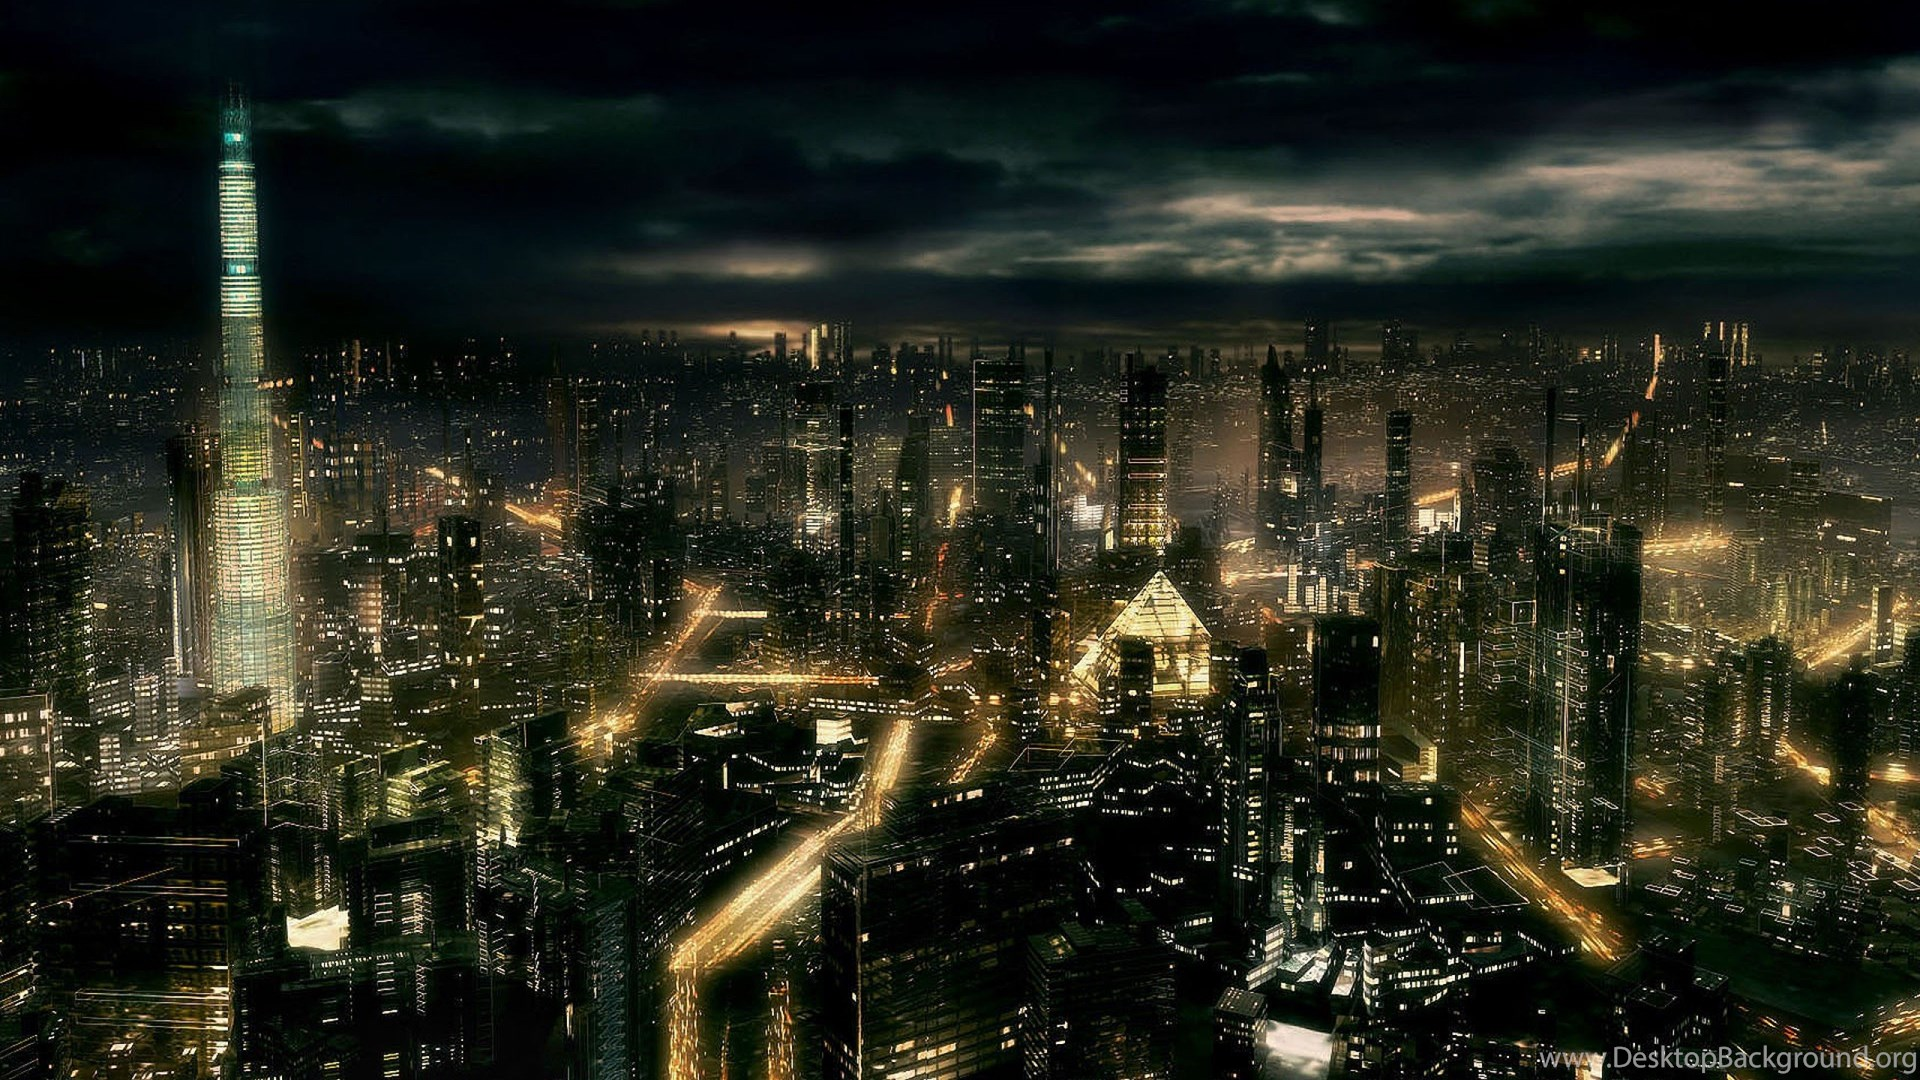 Wallpapers Nature Editing Cityscapes Buildings Night Landscape Hd ...